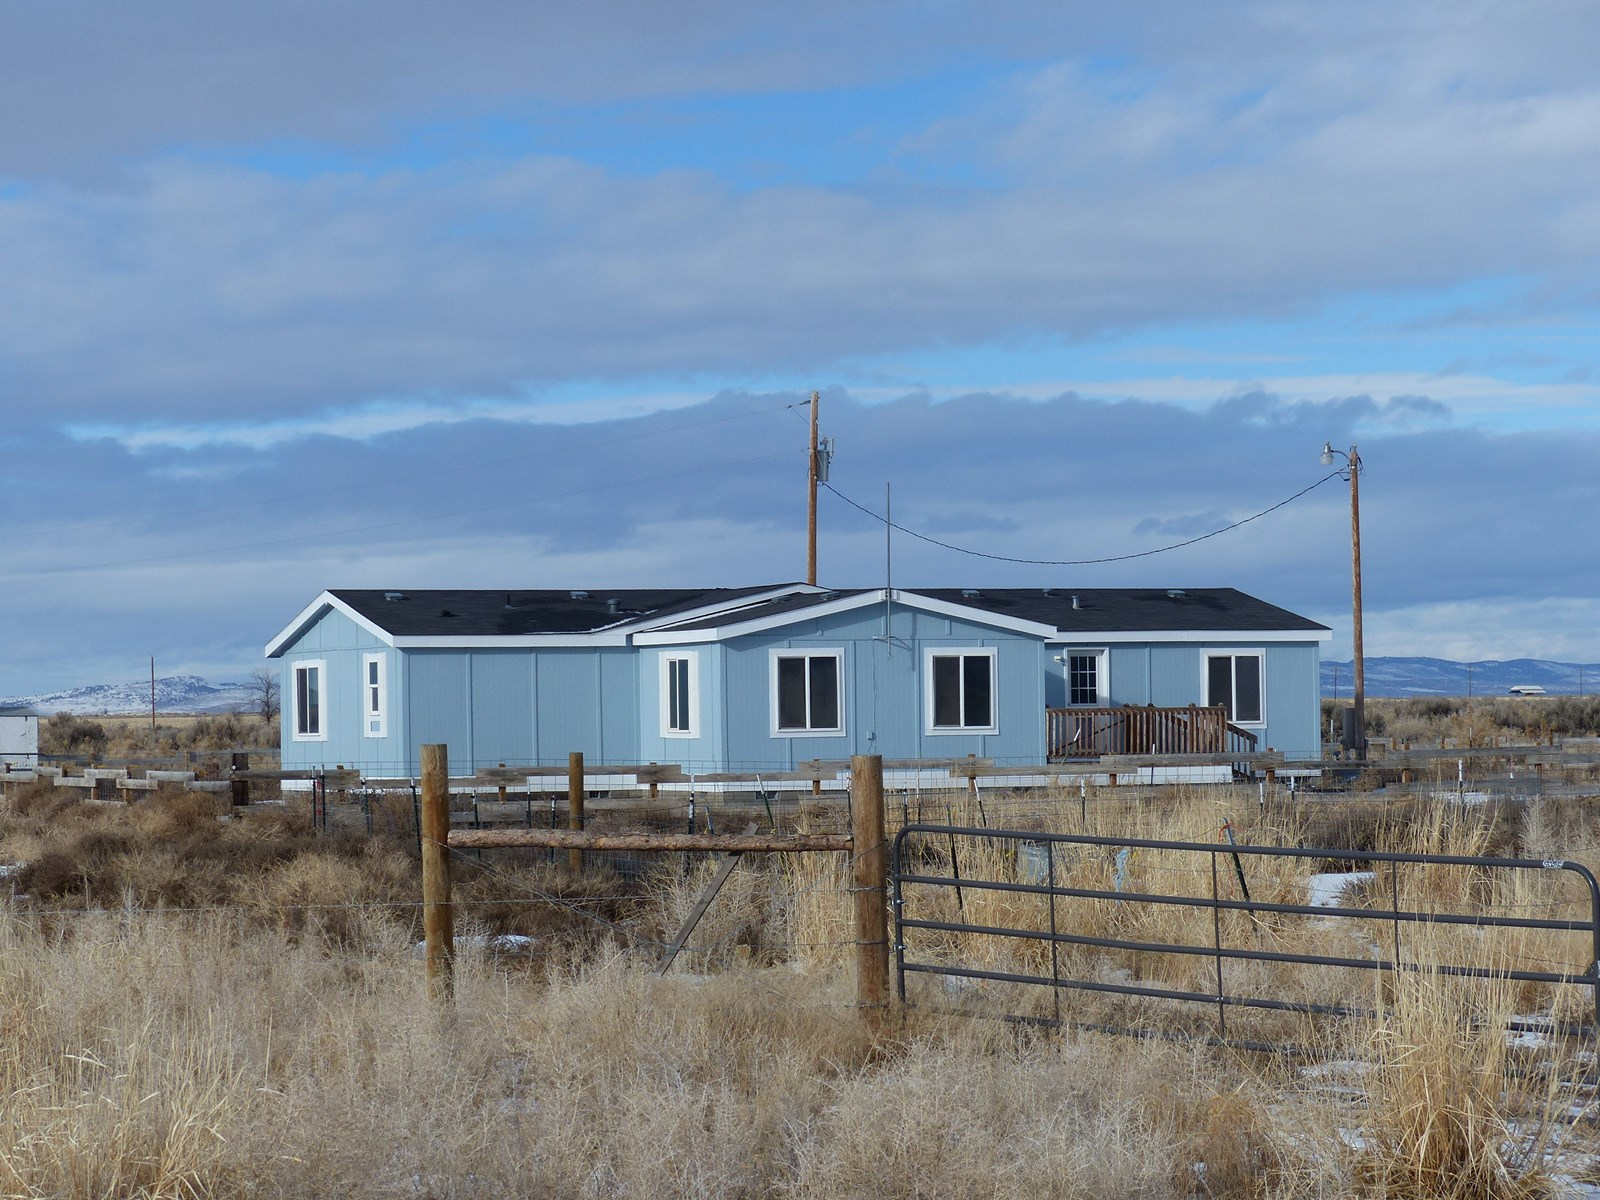 15 MILES EAST OF BURNS OR - MH ON 79+ ACRES FOR SALE